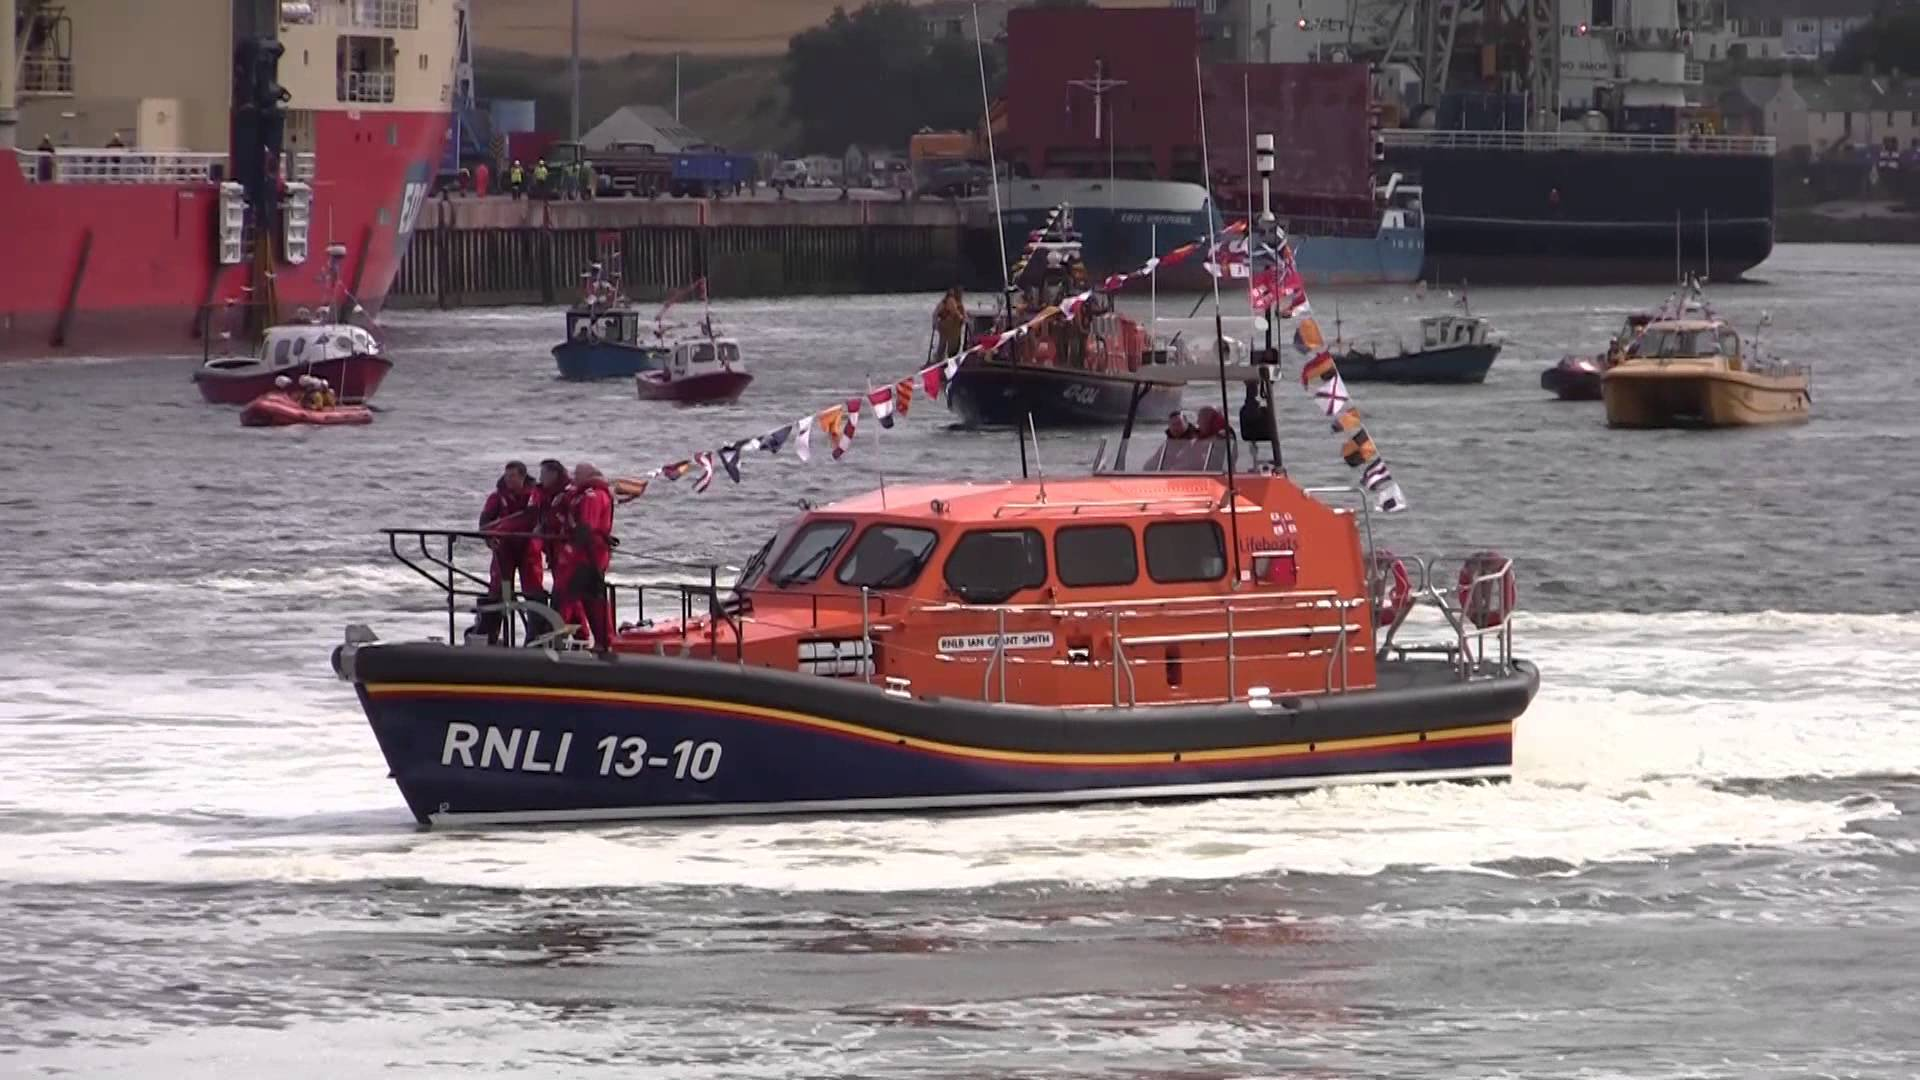 Montrose already has a Shannon-class lifeboat